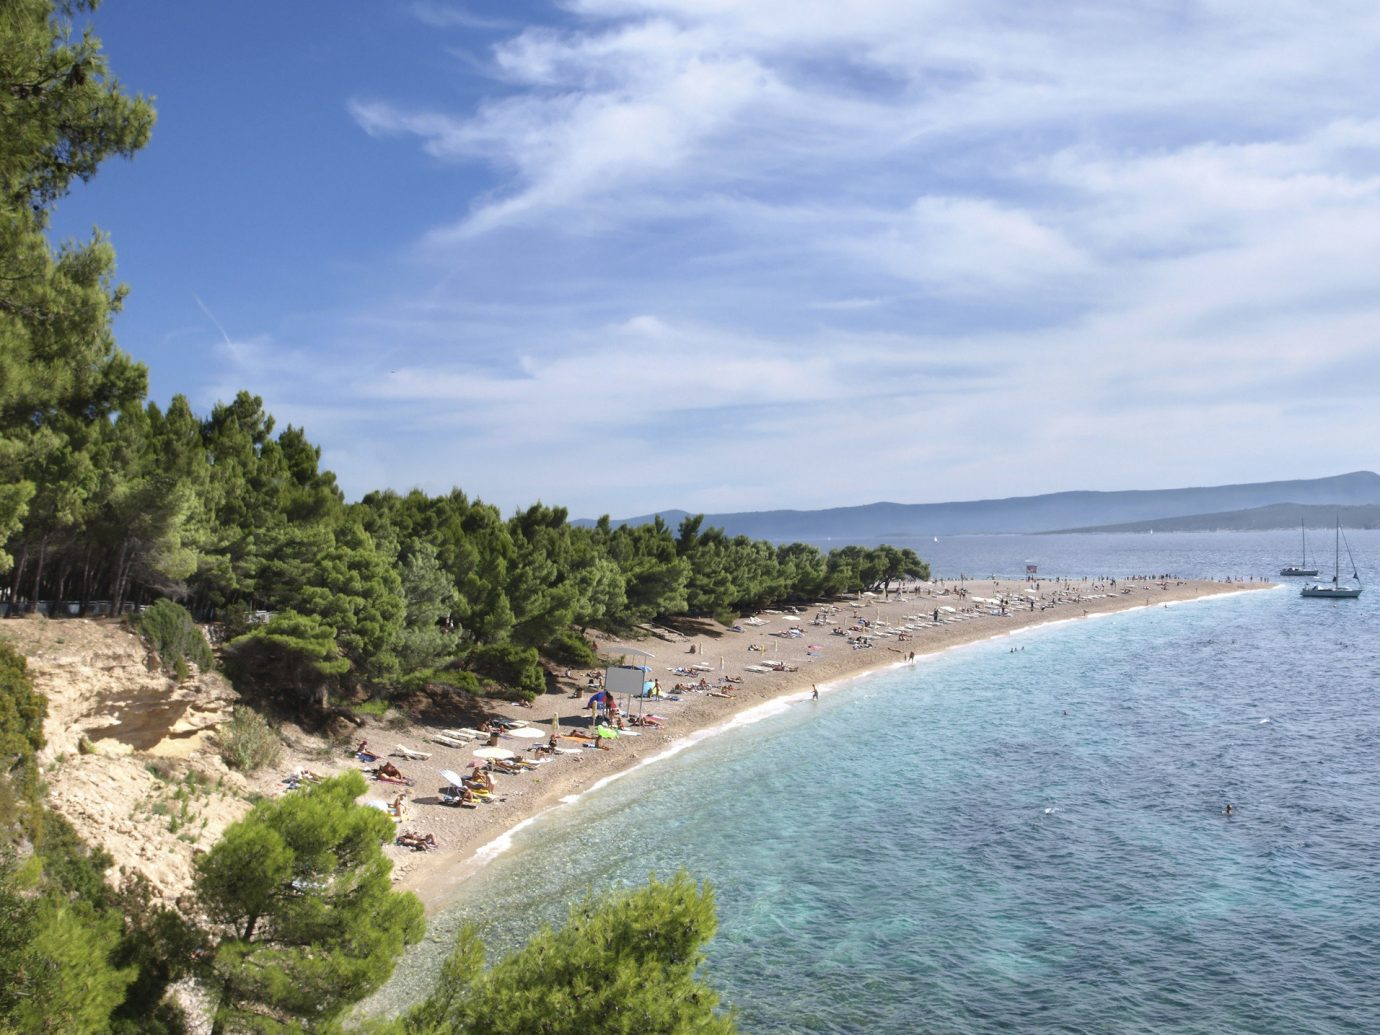 Beach in Rovinj, Croatia